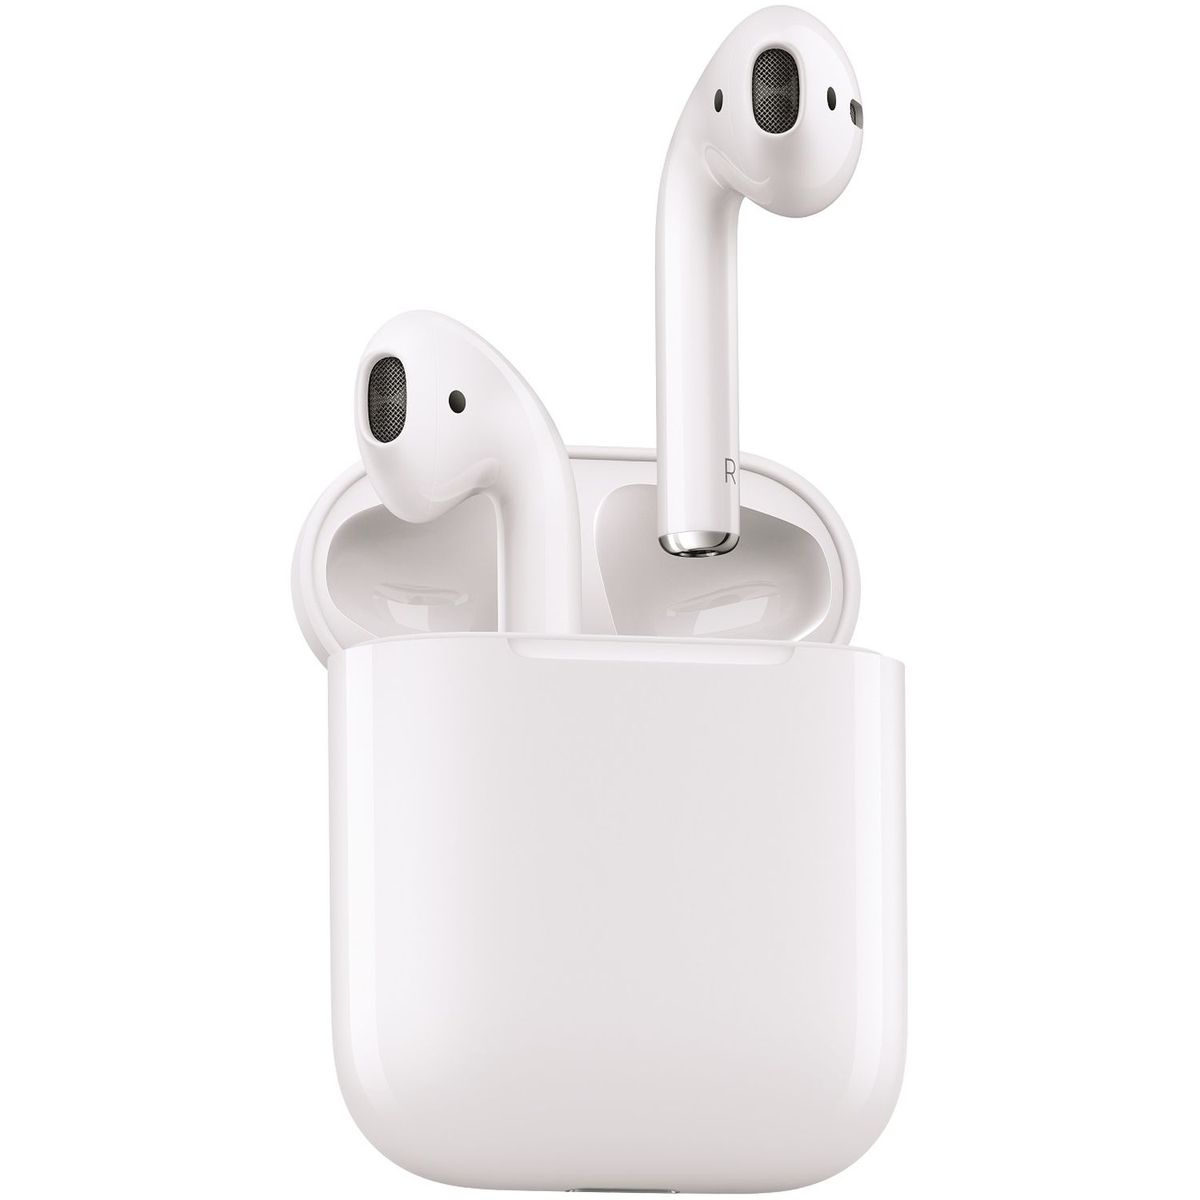 Ecouteurs - Airpods - Bluetooth - Blanc